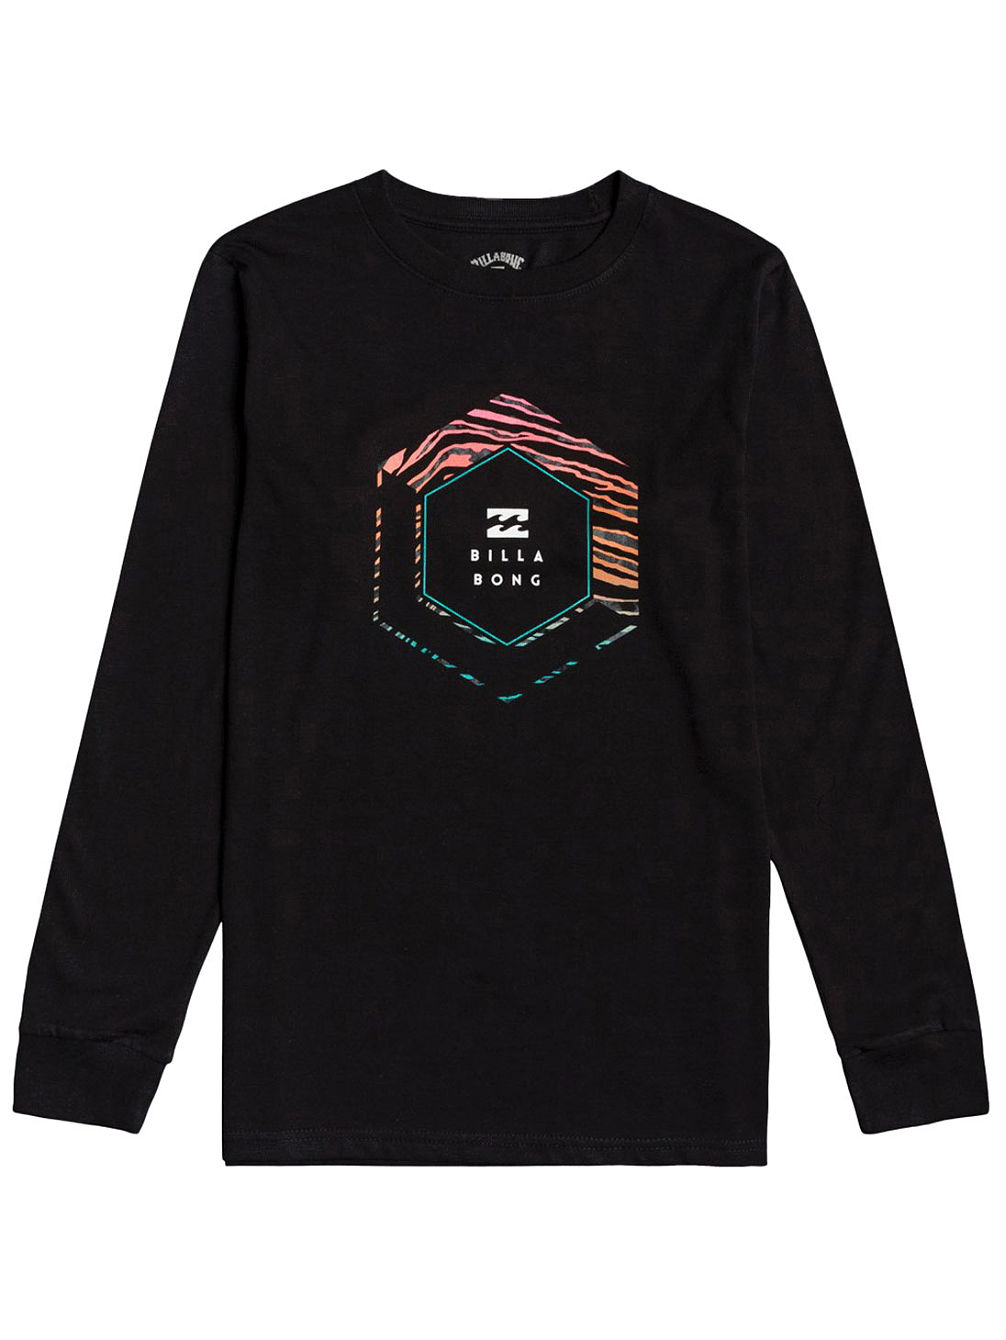 Access Longsleeve T-Shirt